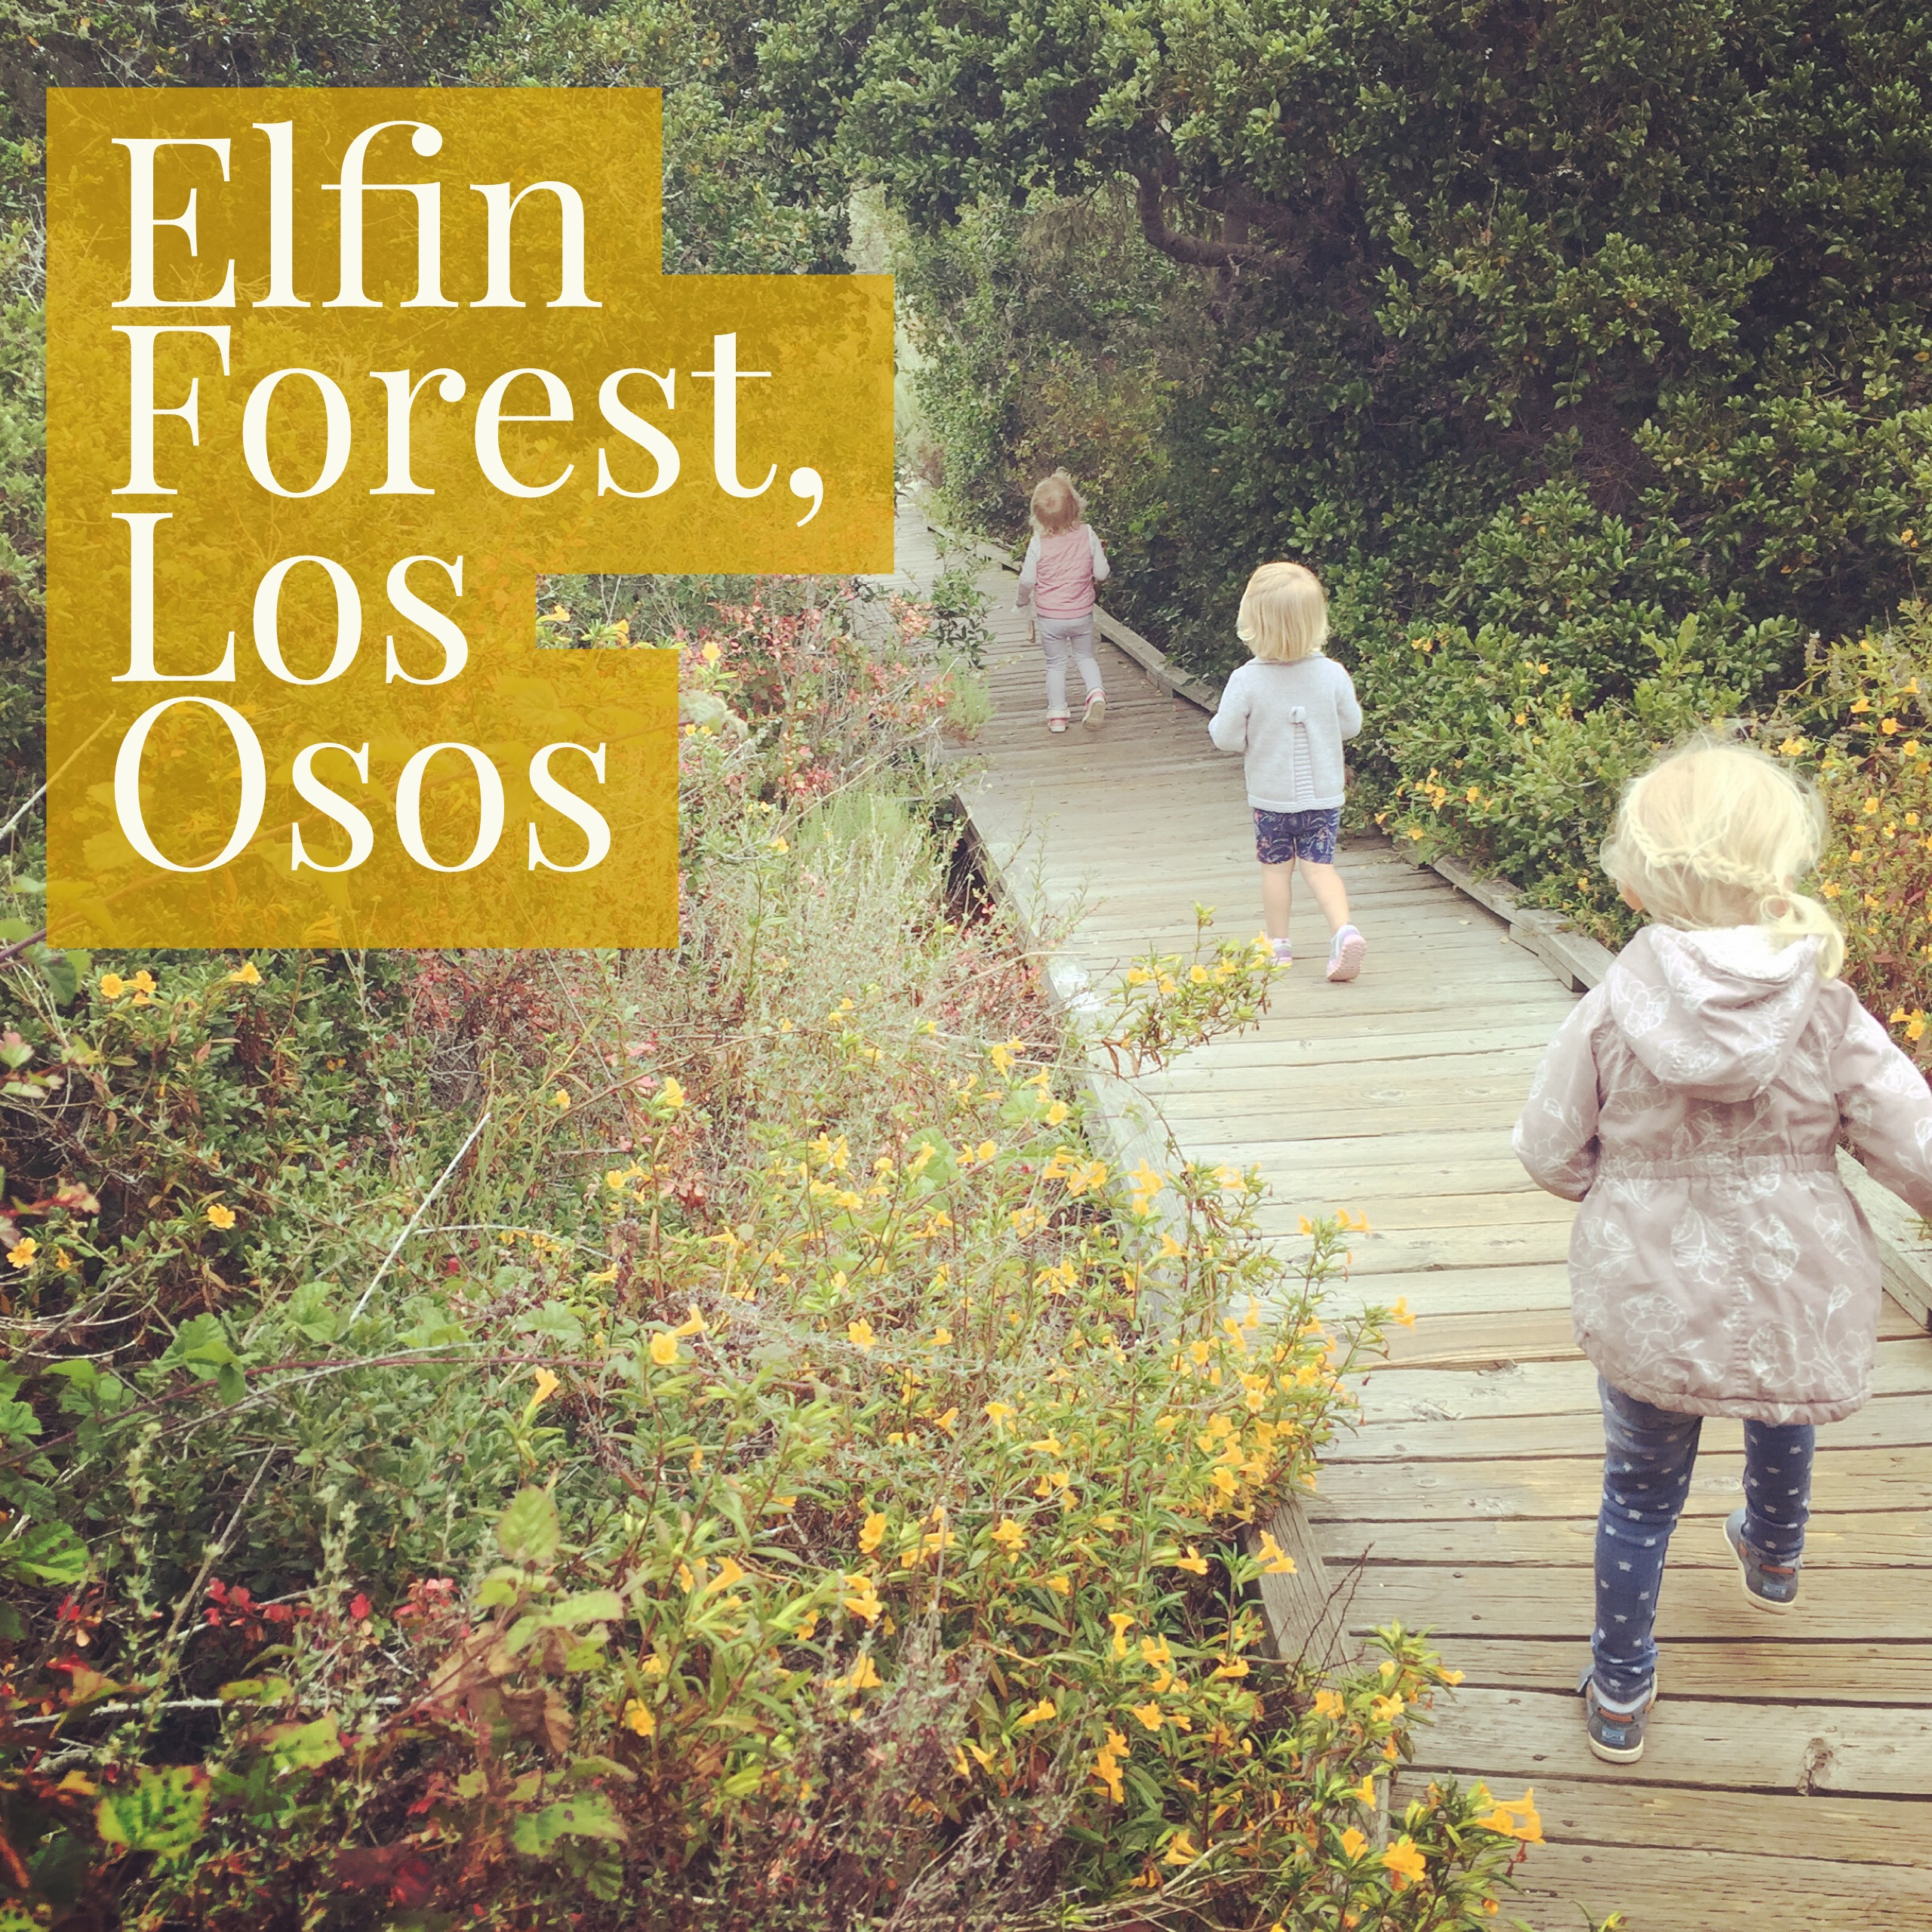 The El Moro Elfin Forest has a child friendly boardwalk for a nice hike in Los Osos.